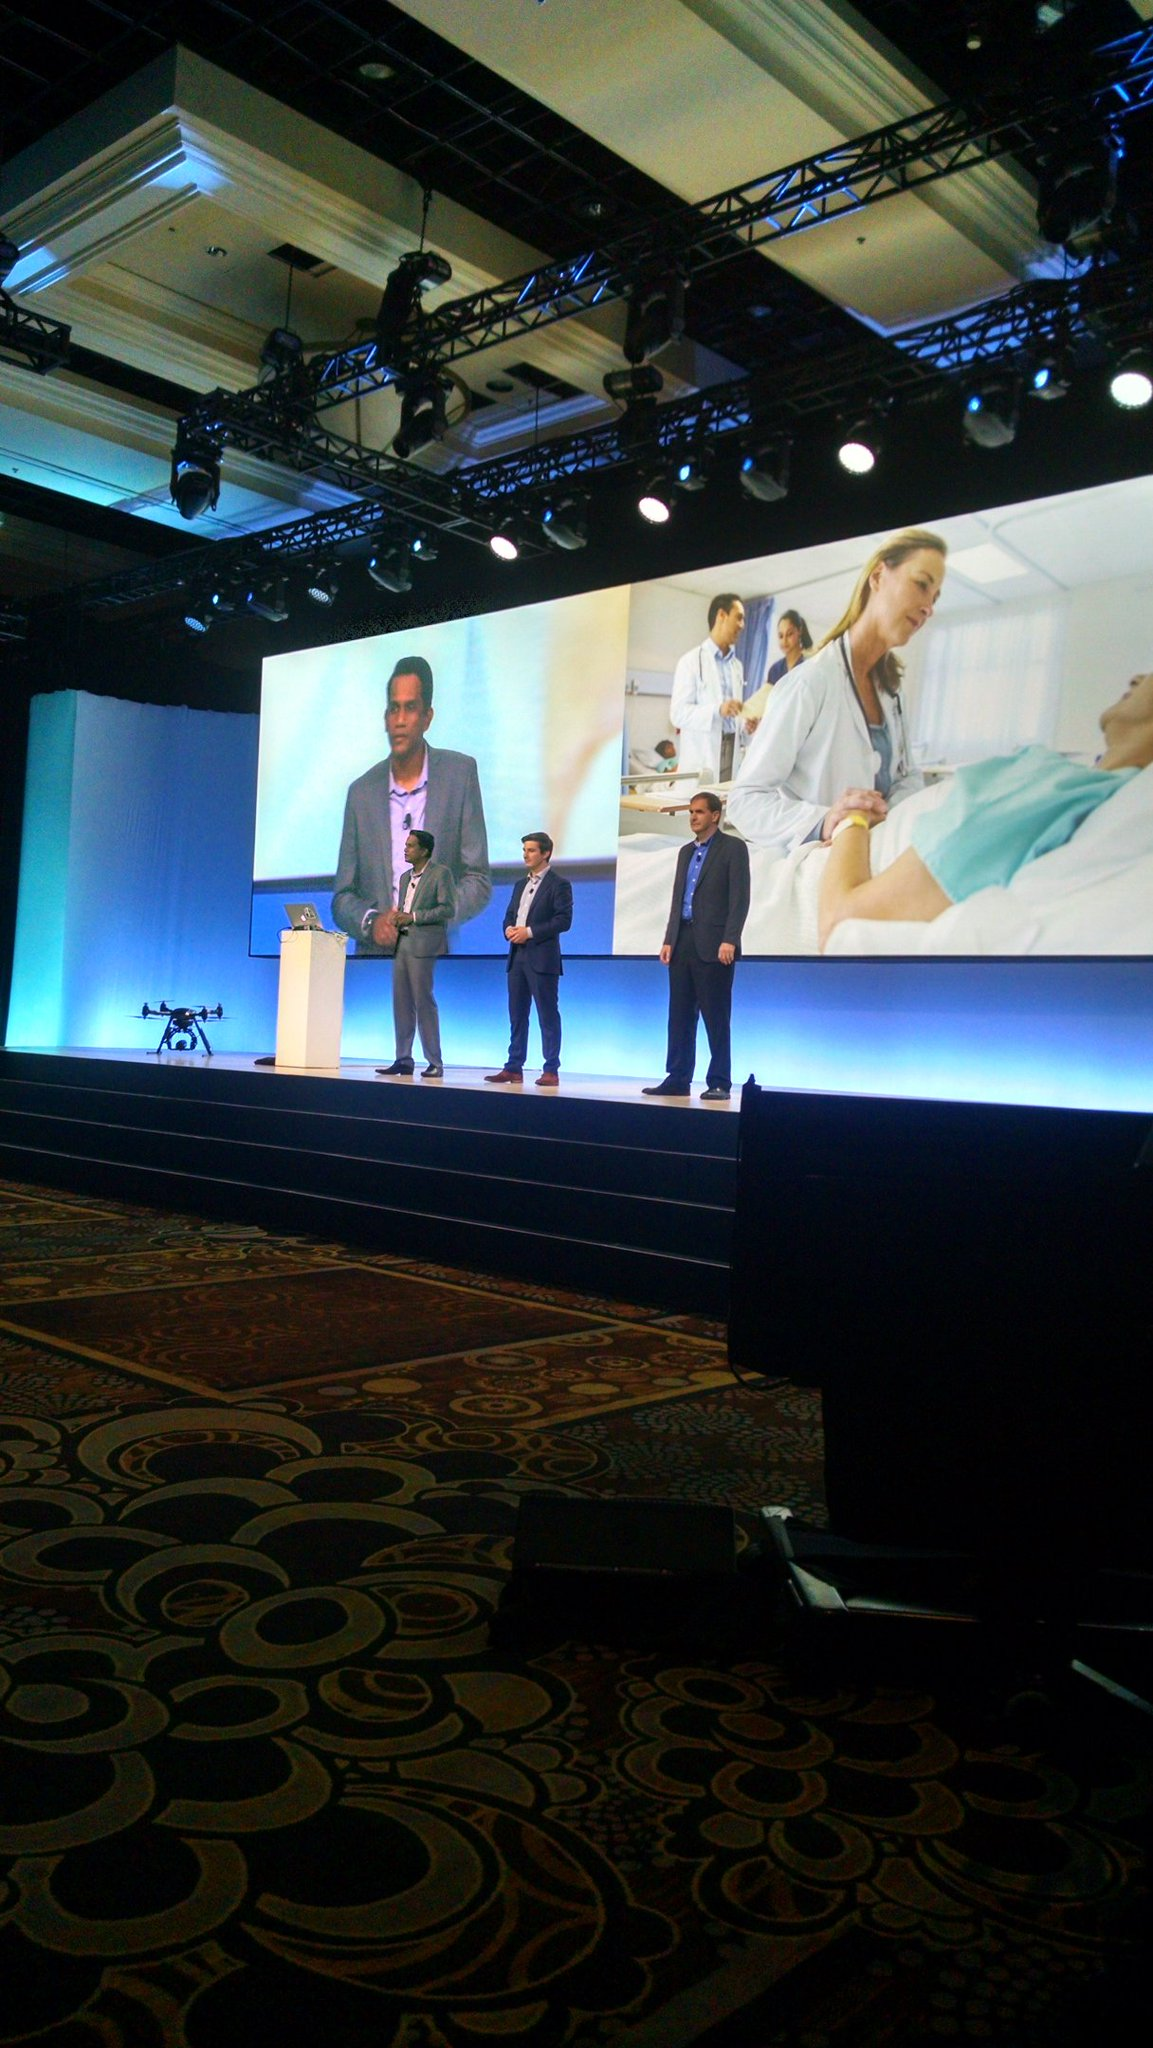 .@neilgomes speaking at #ibmwow about delivering better care by leveraging #WatsonIoT https://t.co/Tsyv2UzN7H